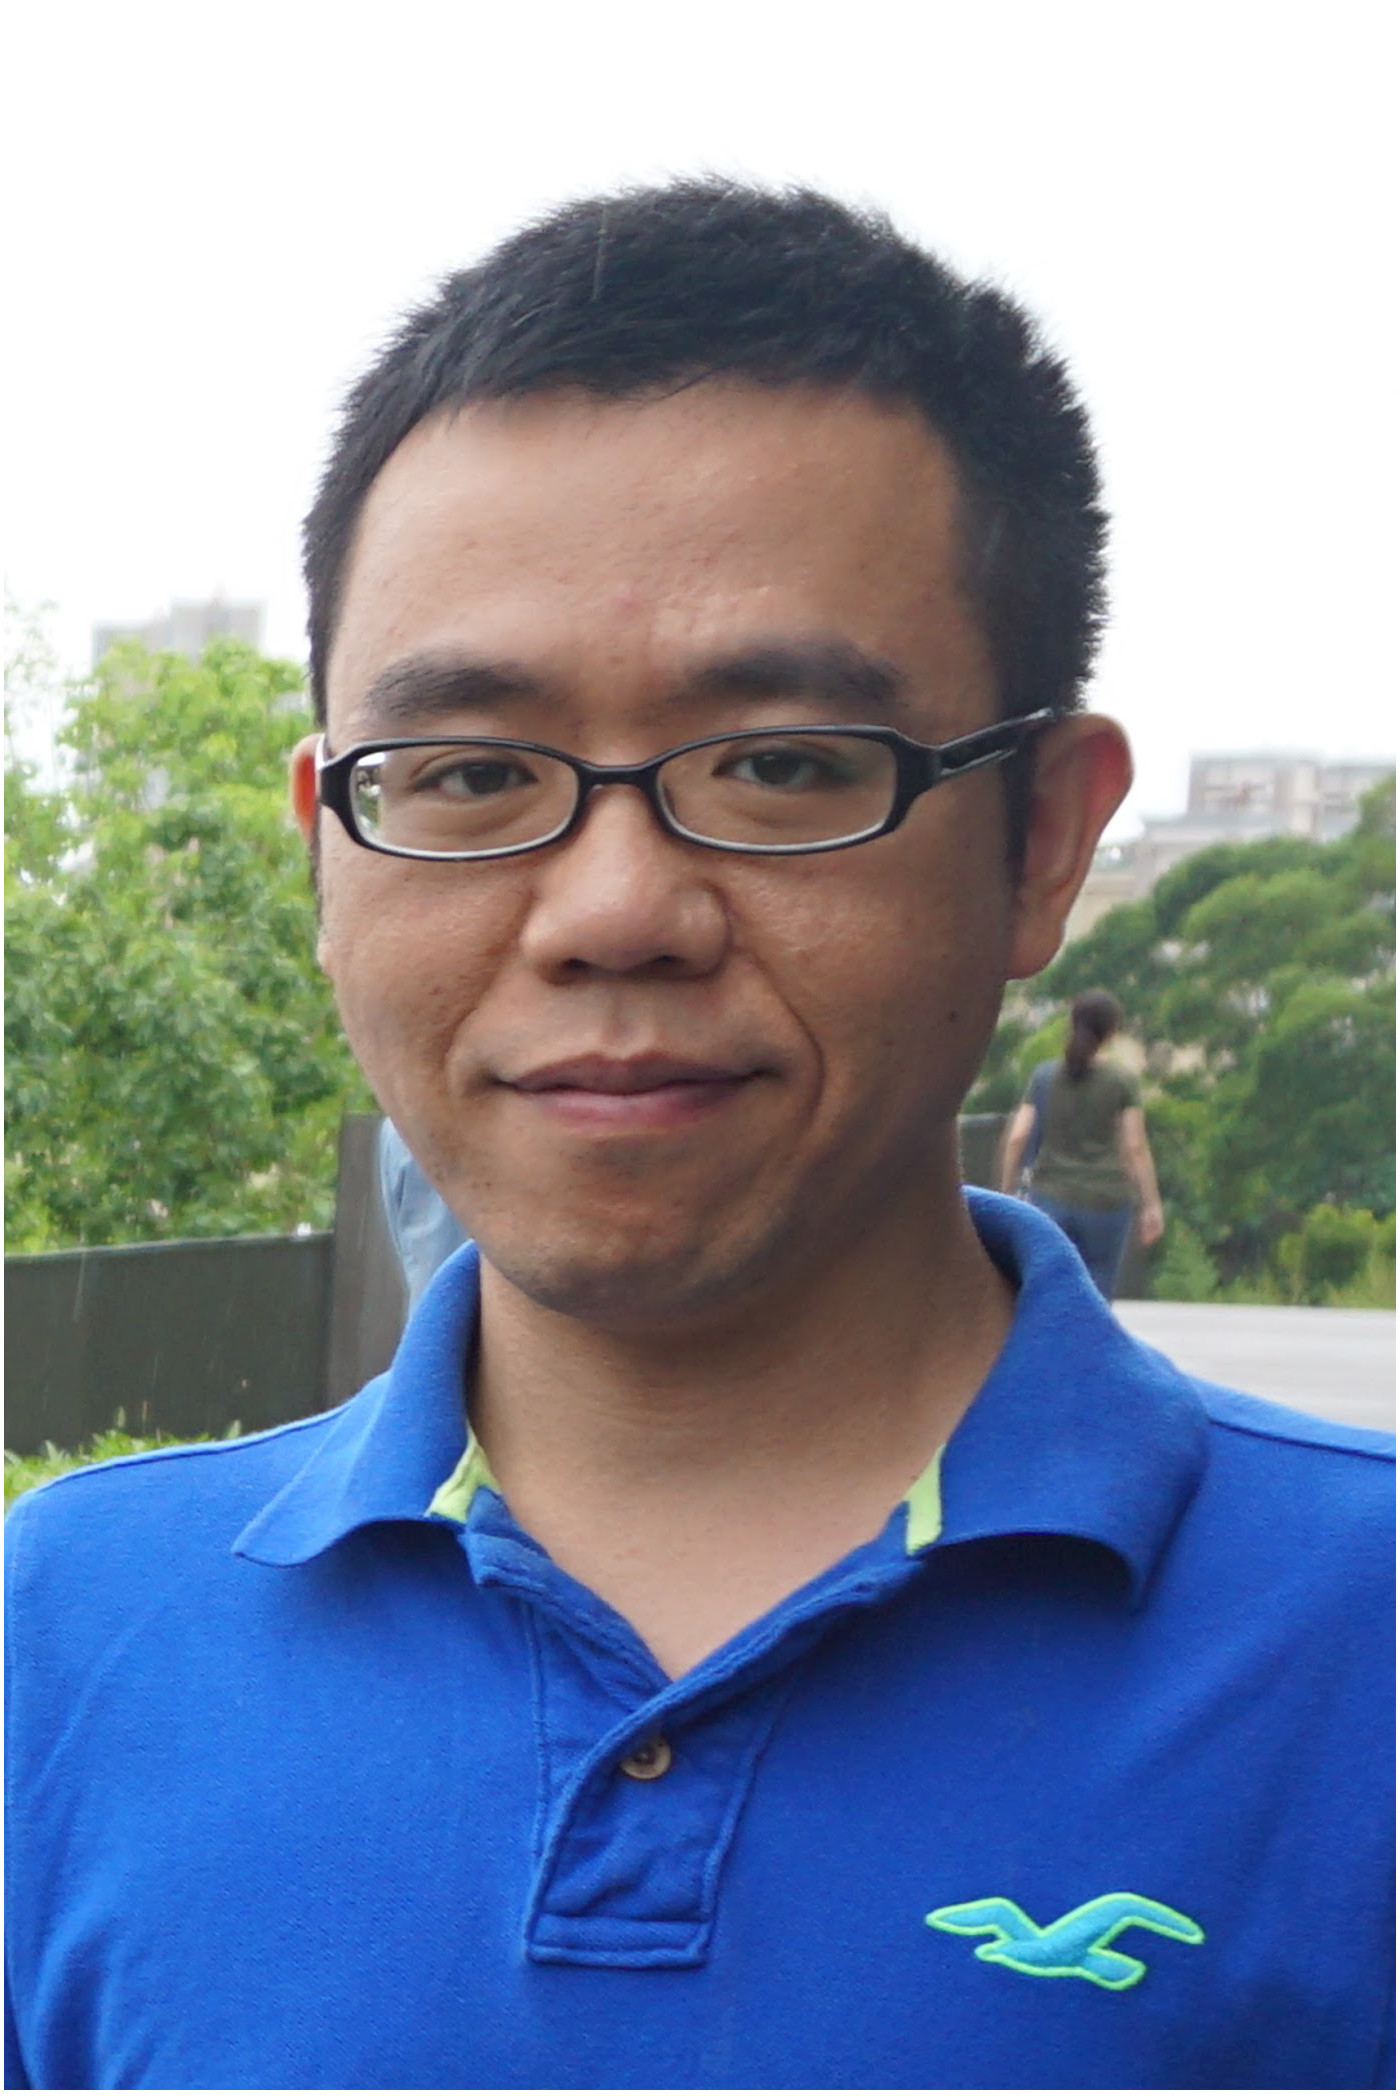 Dr. Chen's Photo From NCU CSIE official.